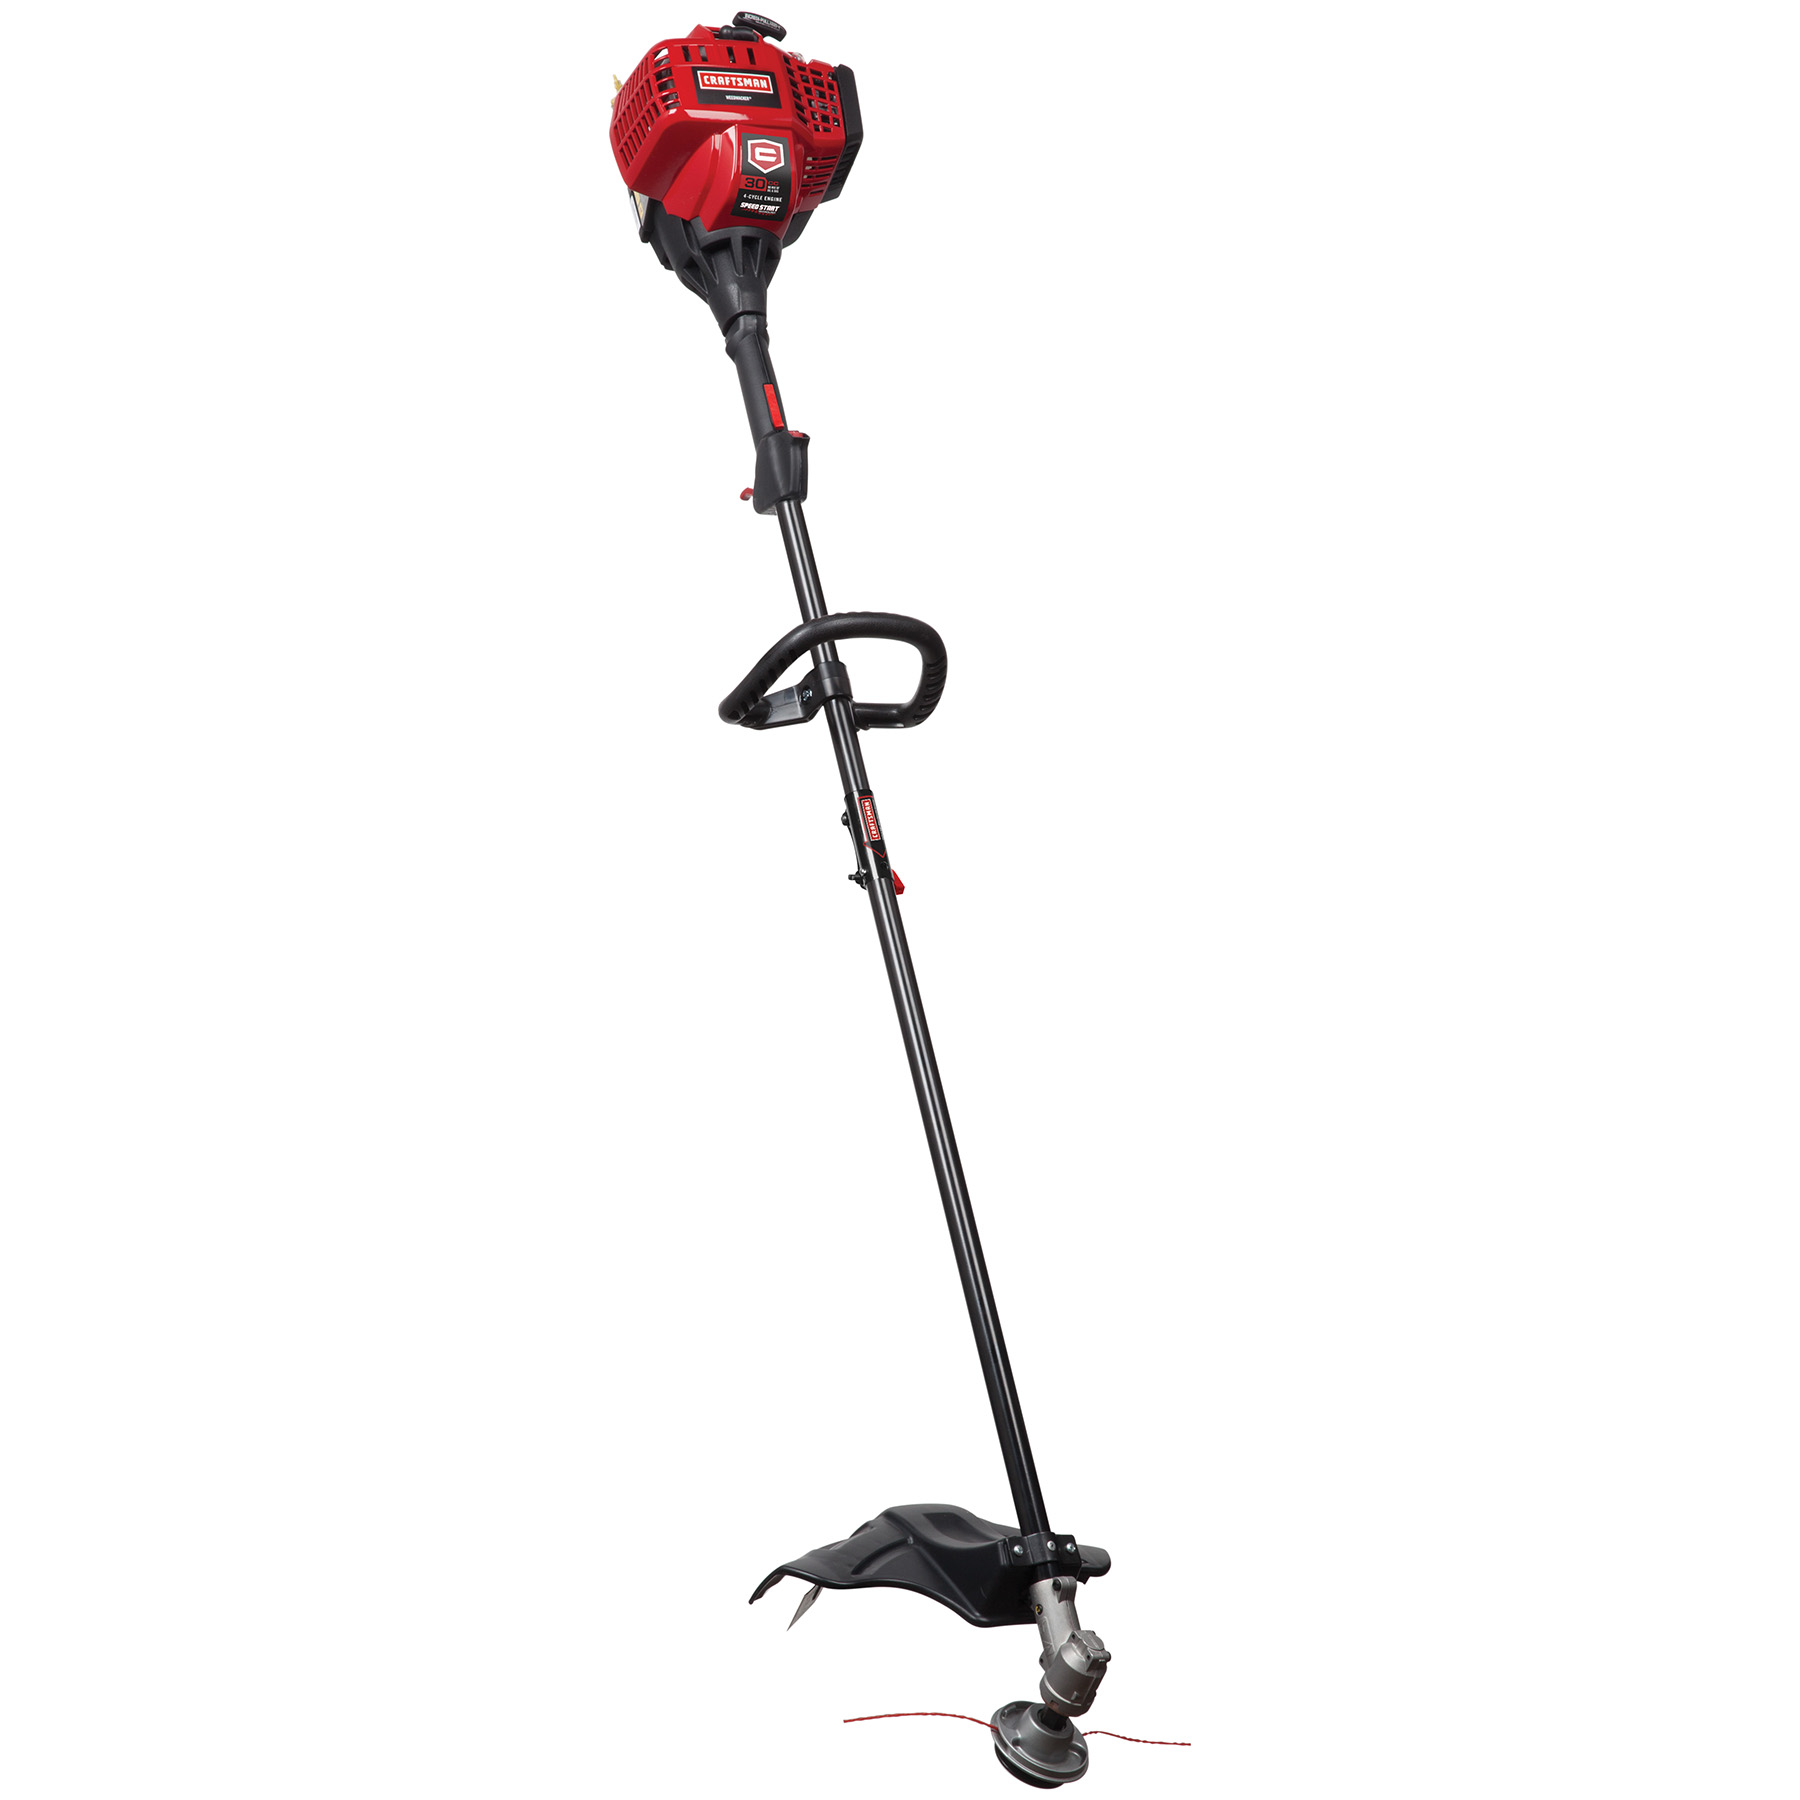 Craftsman 30cc 4-Cycle Gas-Powered Trimmer